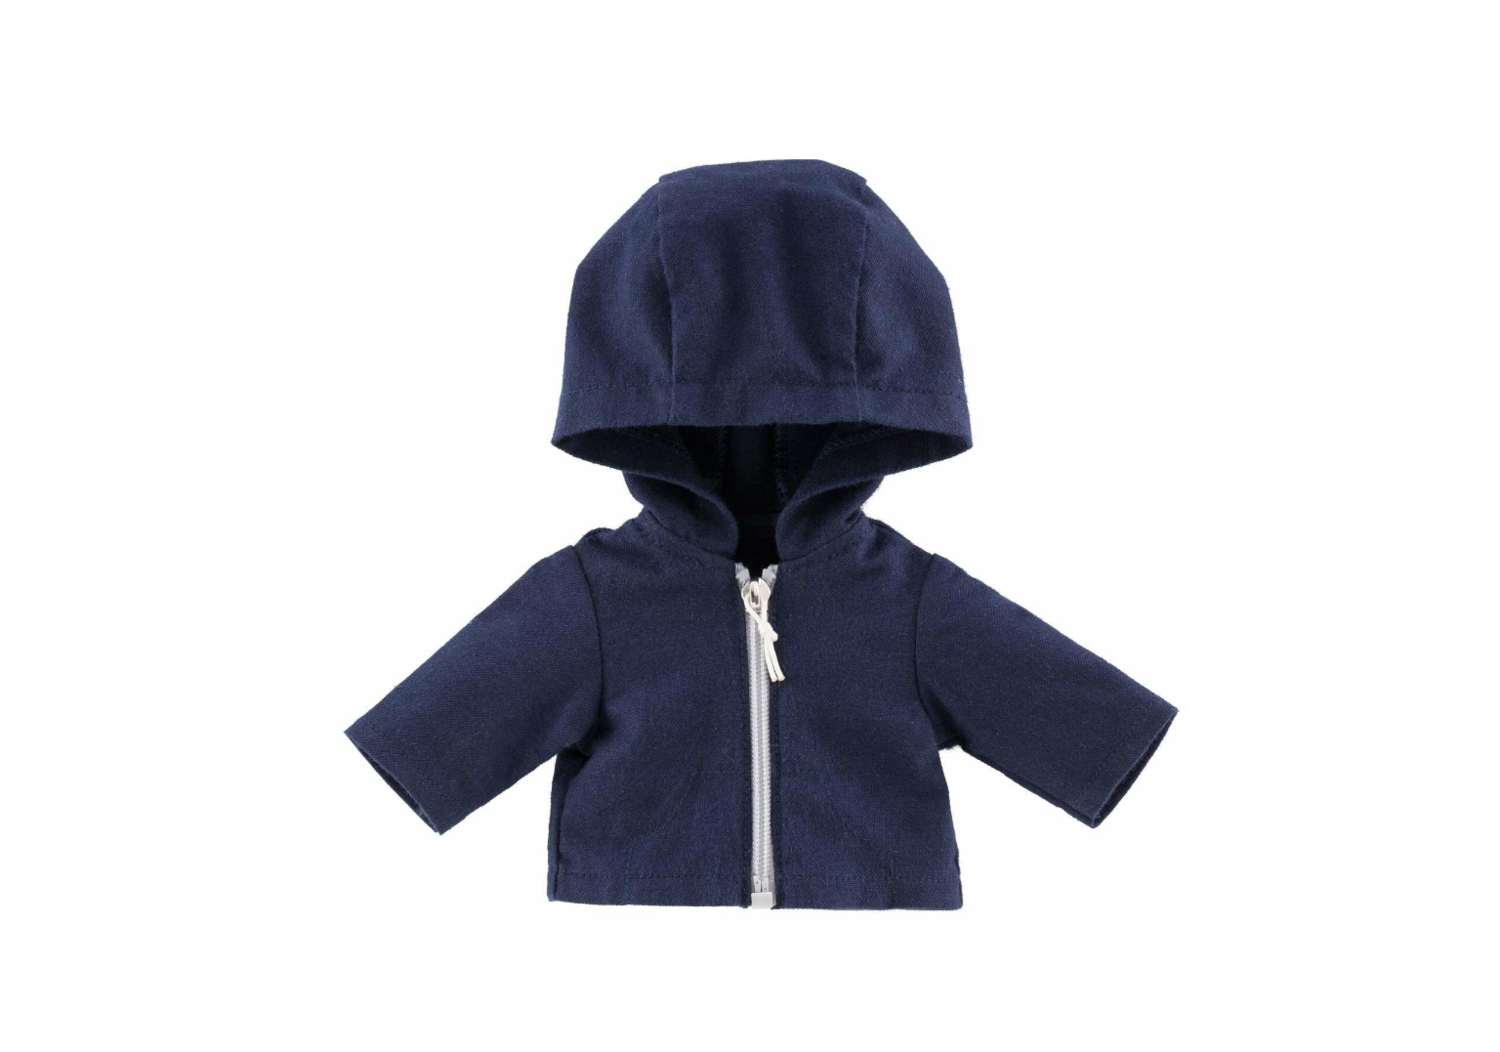 COROLLE DJB79-0 VESTE A CAPUCHE HOODED JACKET MA COROLLE 36 CM POUPEE JEU JEUX JOUET NOEL FILLE GIRL 887961222784 VETEMENT HABIT DRESS CLOTHING WEAR APPAREL COMASOUND KARTEL CSK ONLINE